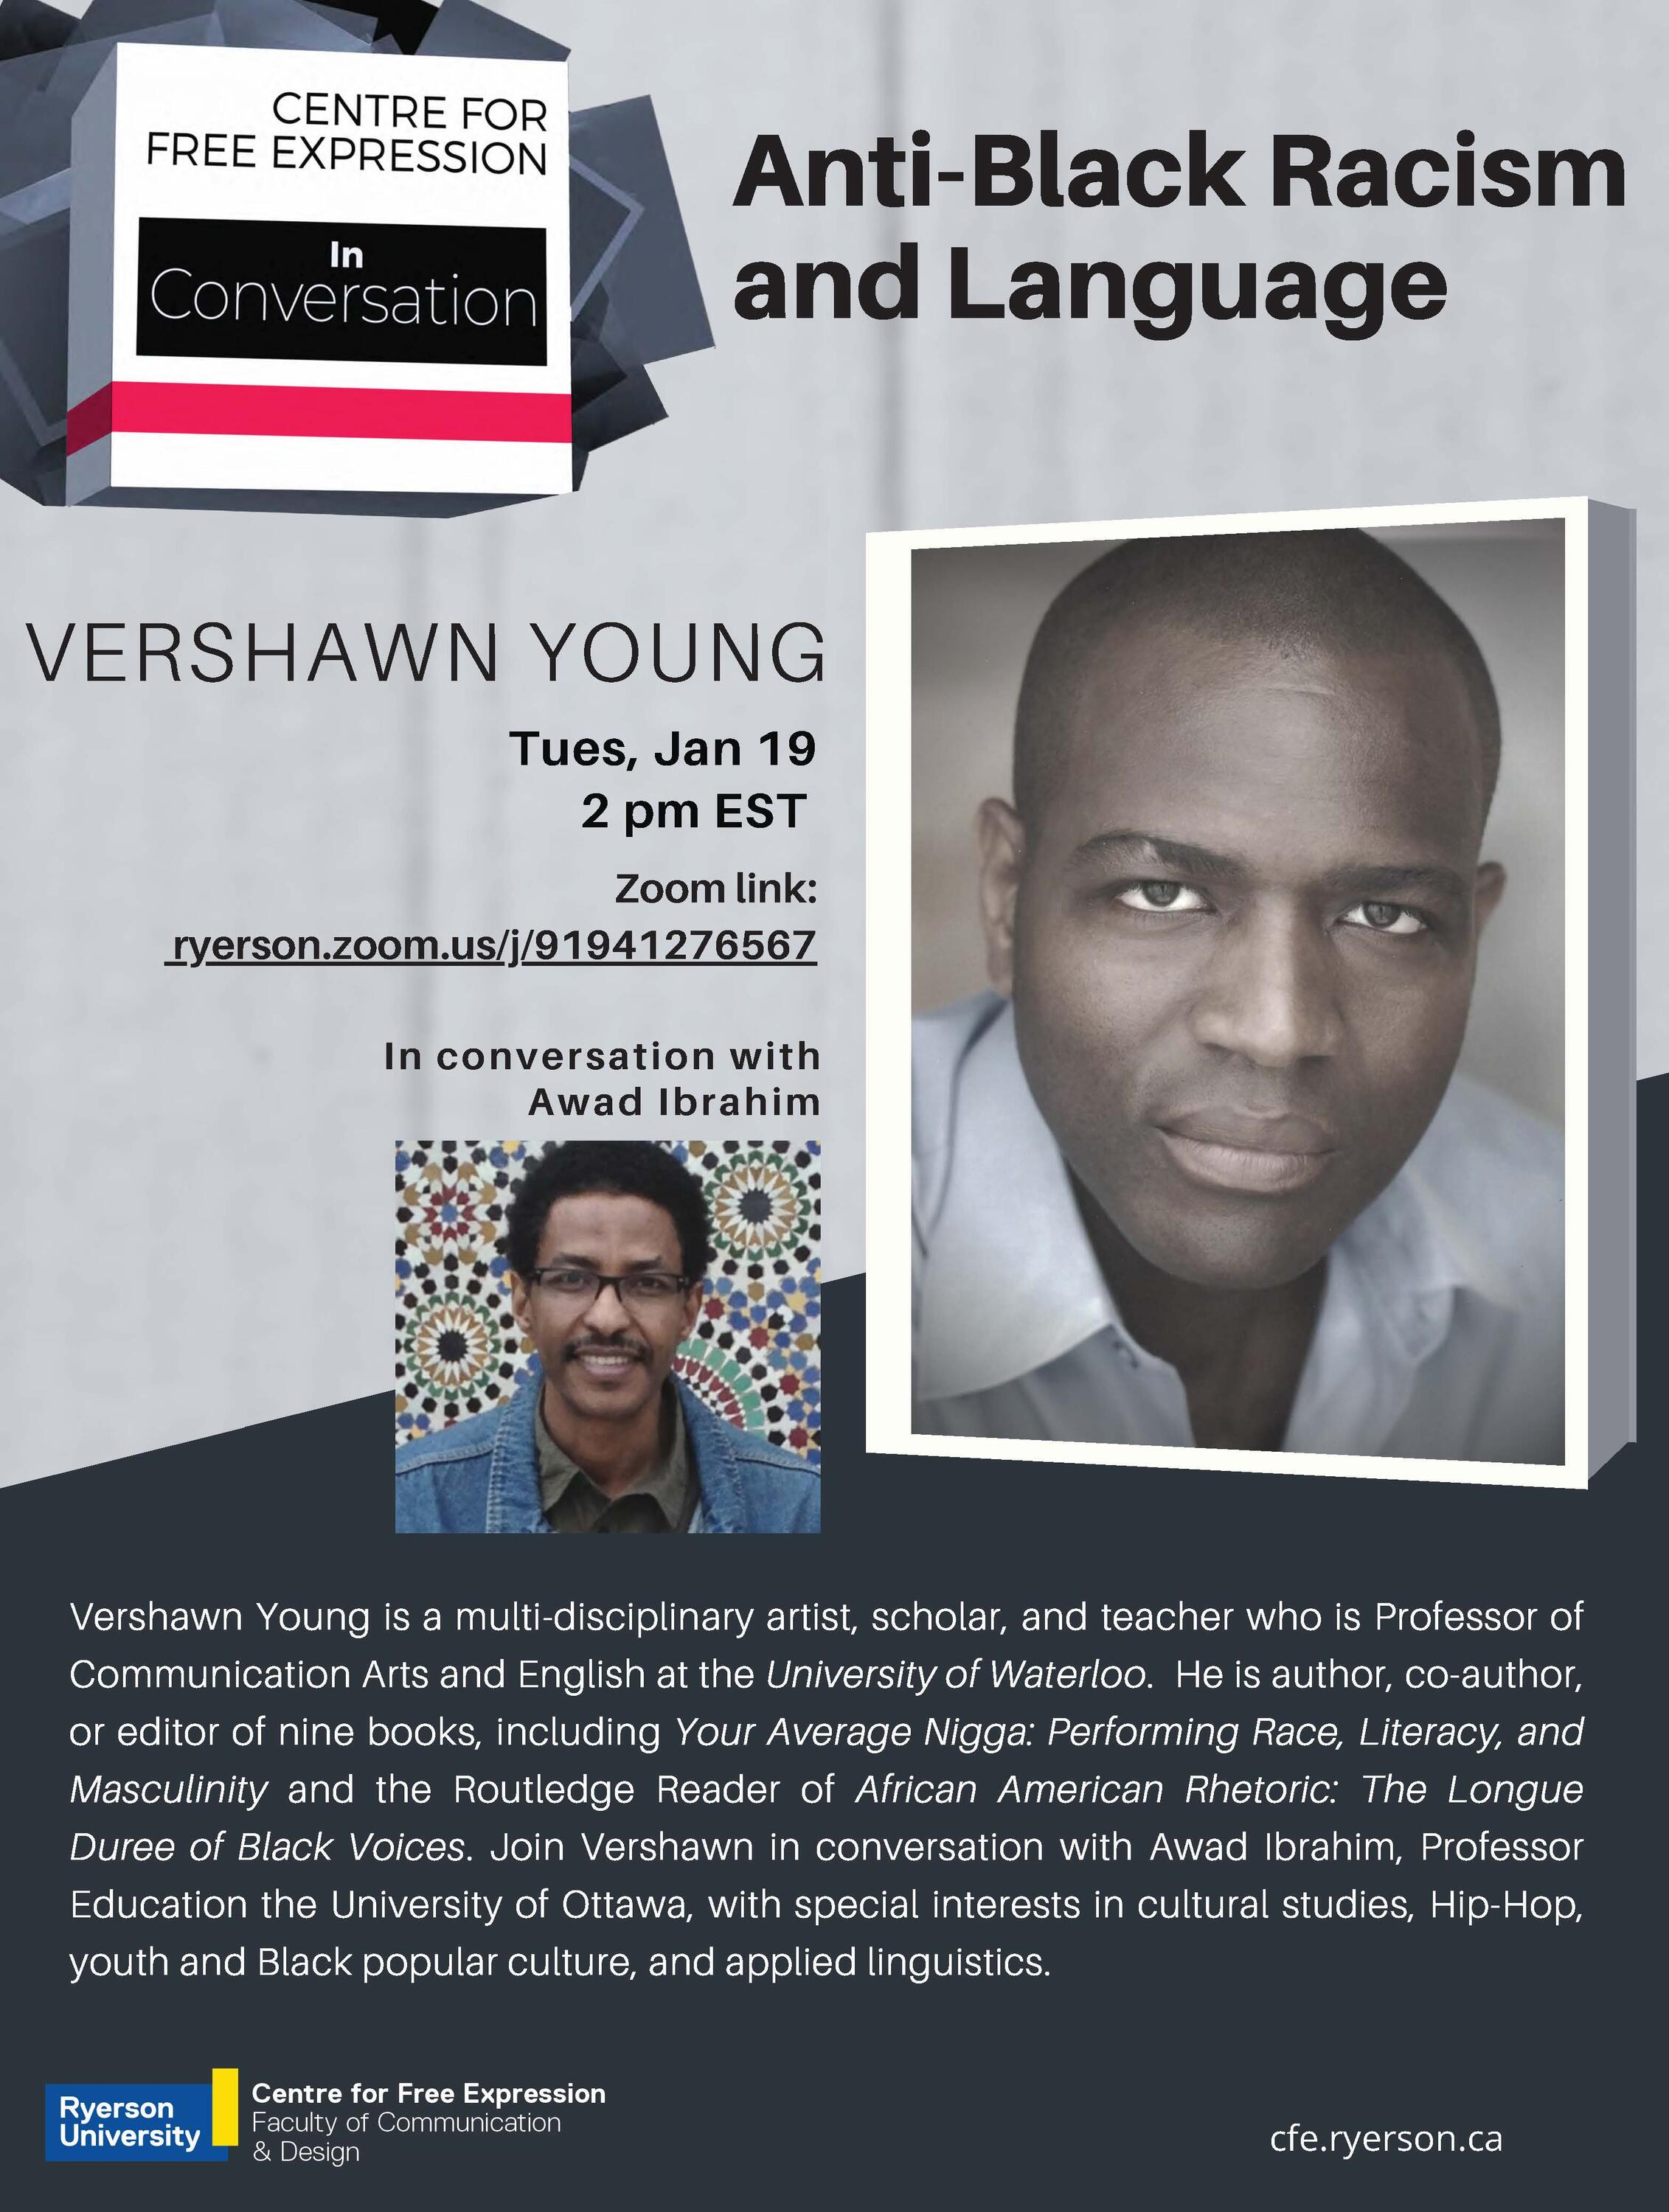 poster of anti-black racism and language event